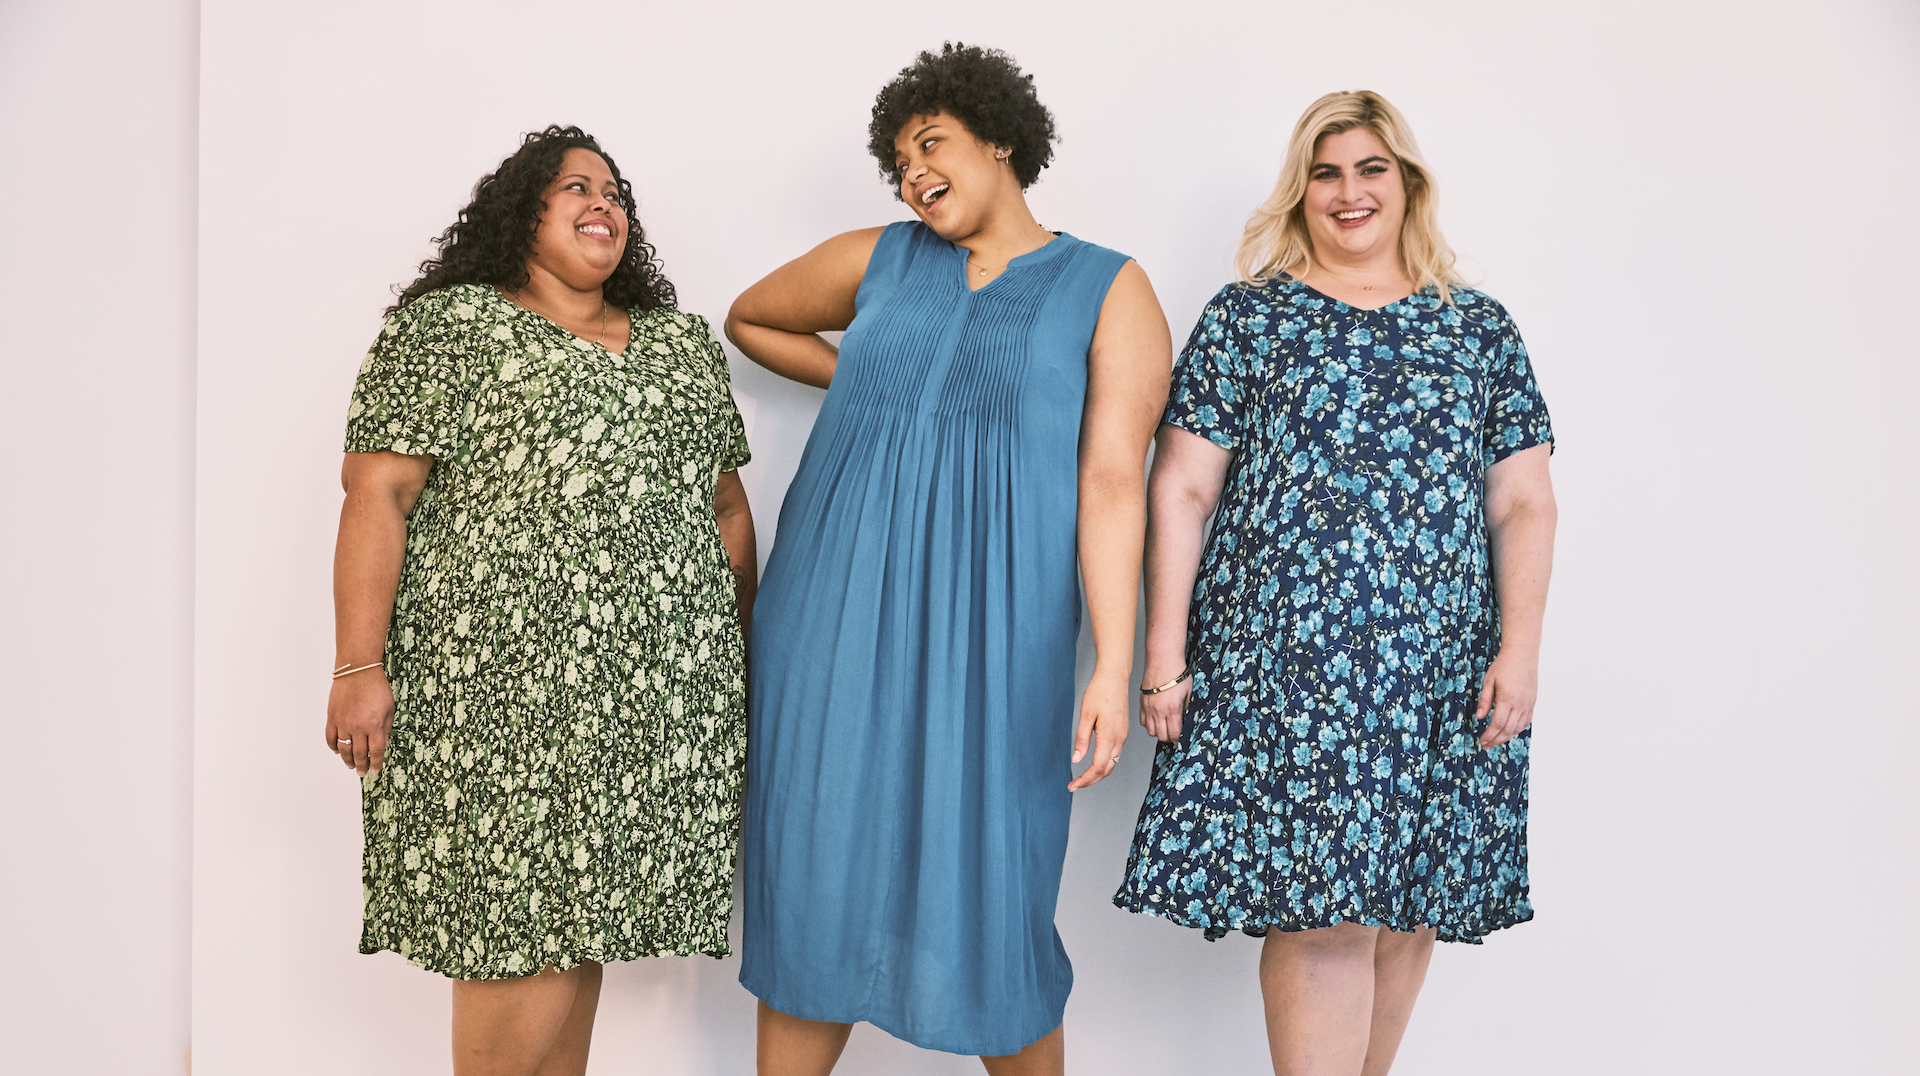 You'll Want to Live In These Comfy Spring Dresses From Plus-Size Brand Woman Within